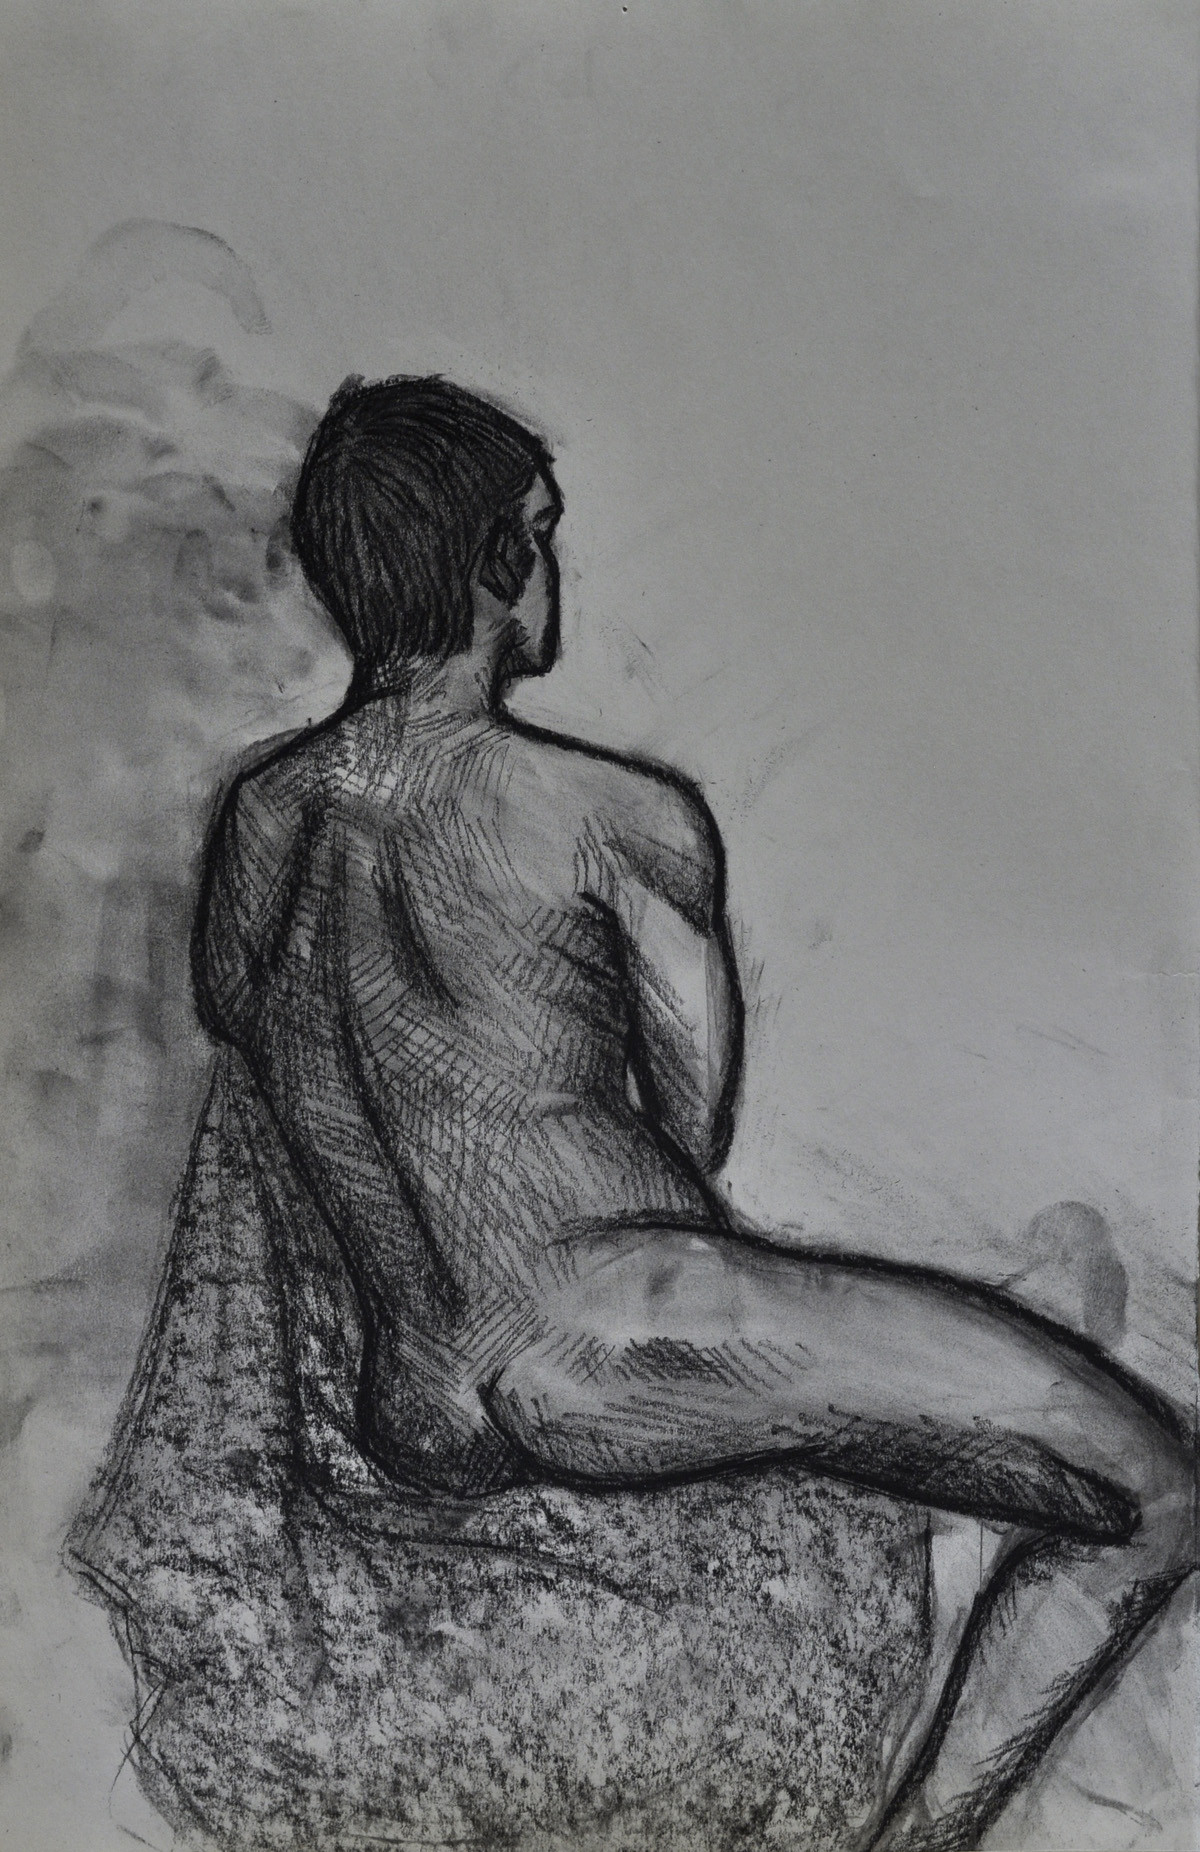 Vine and pressed charcoal